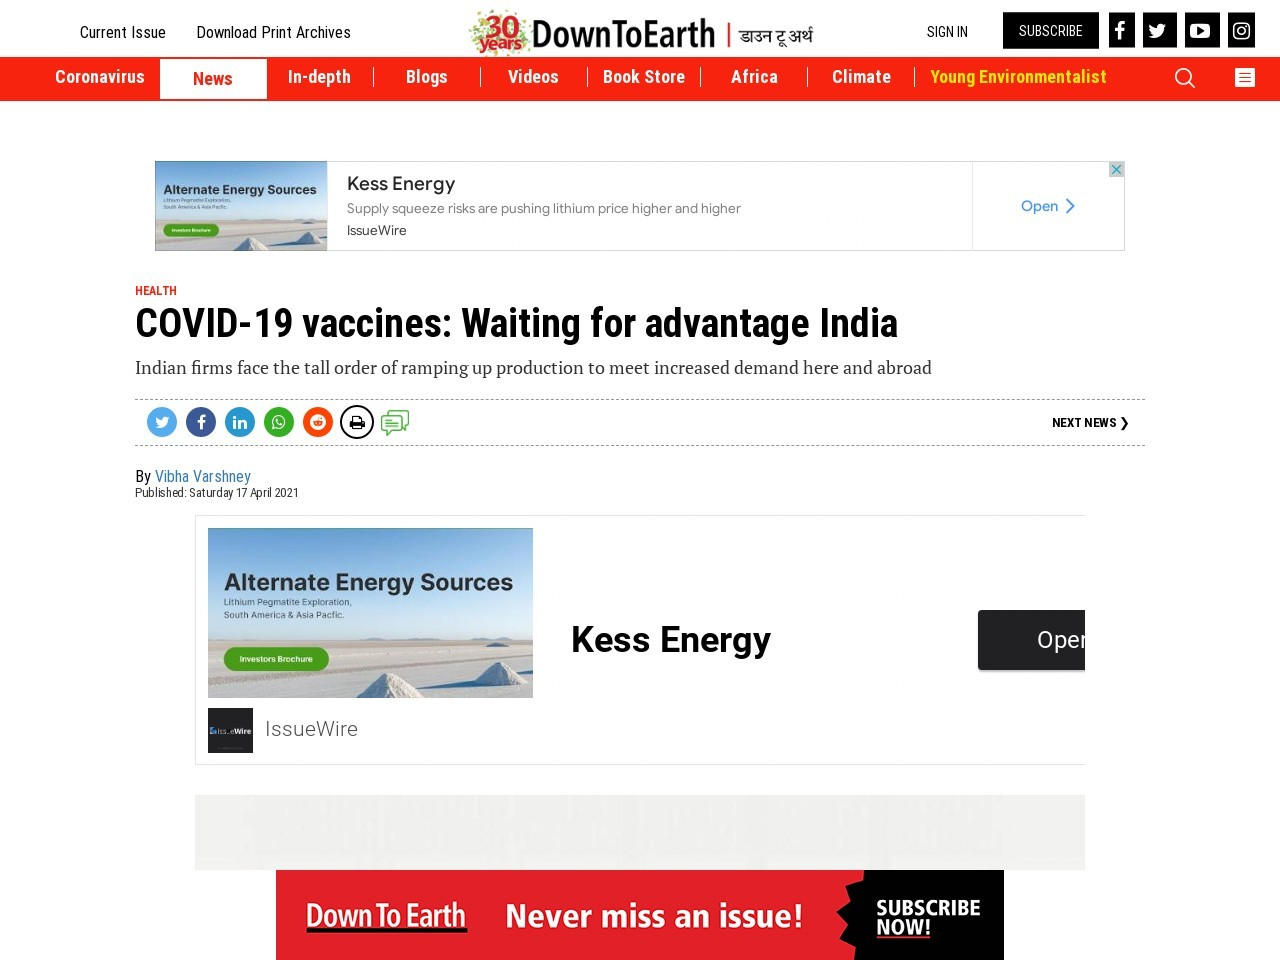 COVID-19 vaccines: Waiting for advantage India